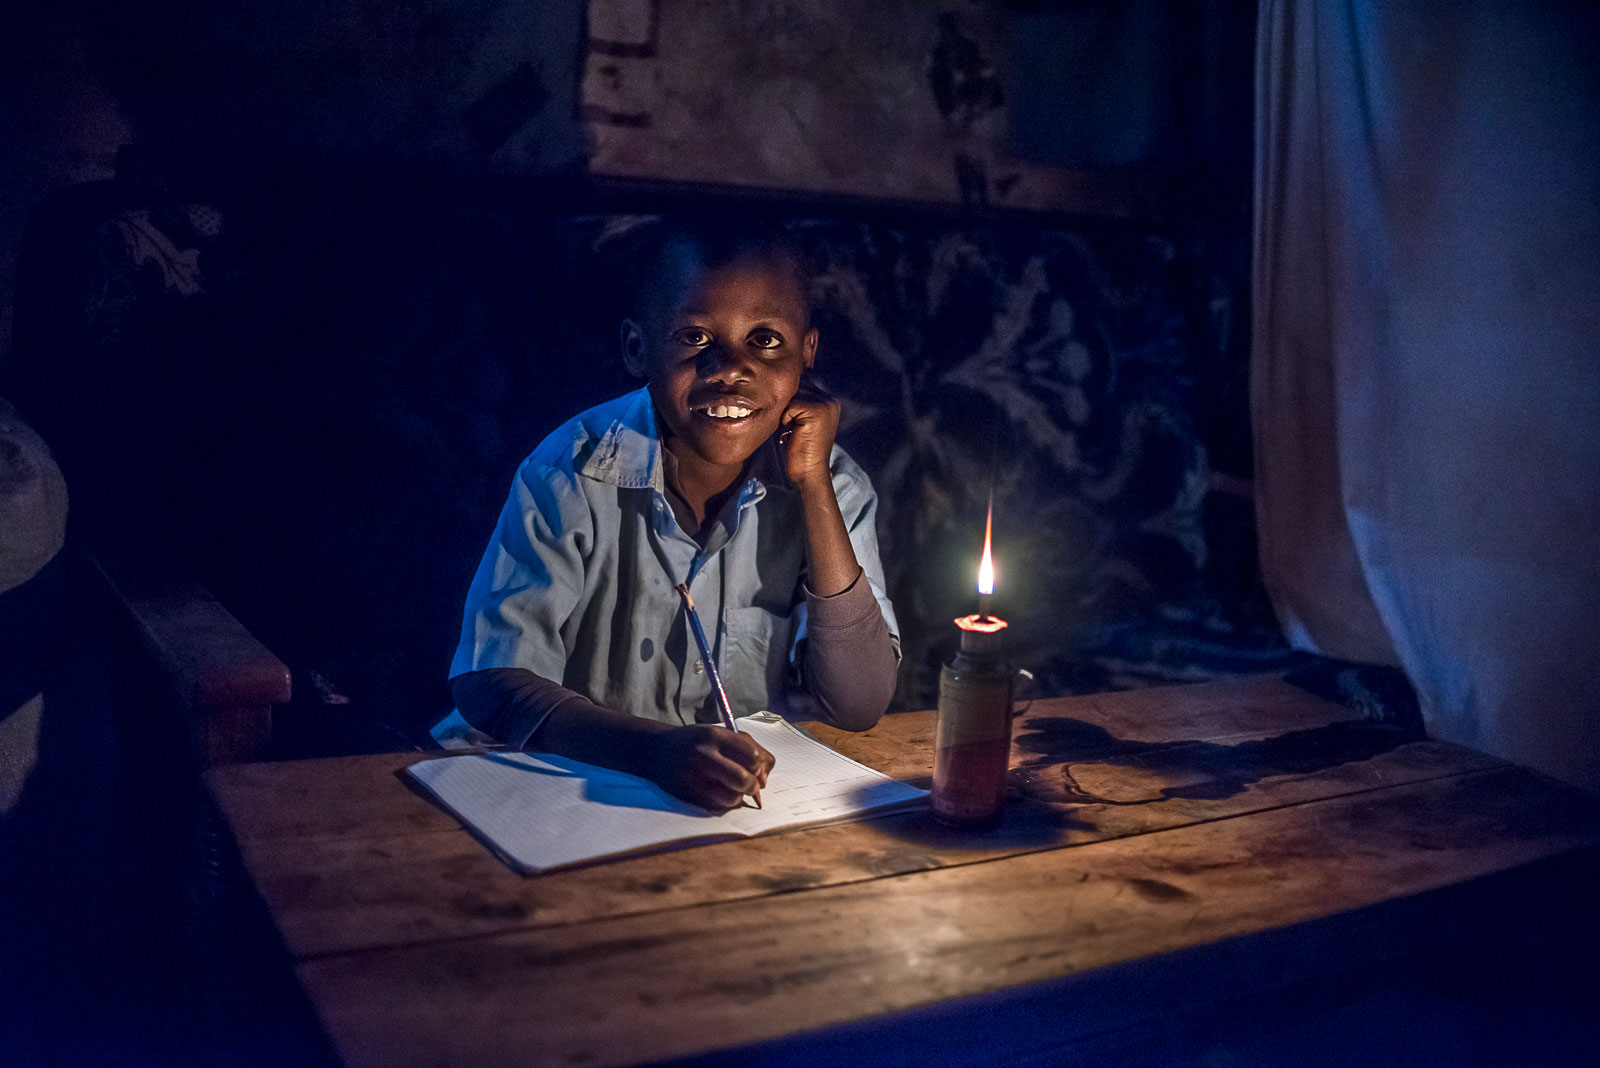 6 Beautiful Photos Of Children Living in Poverty Doing Homework